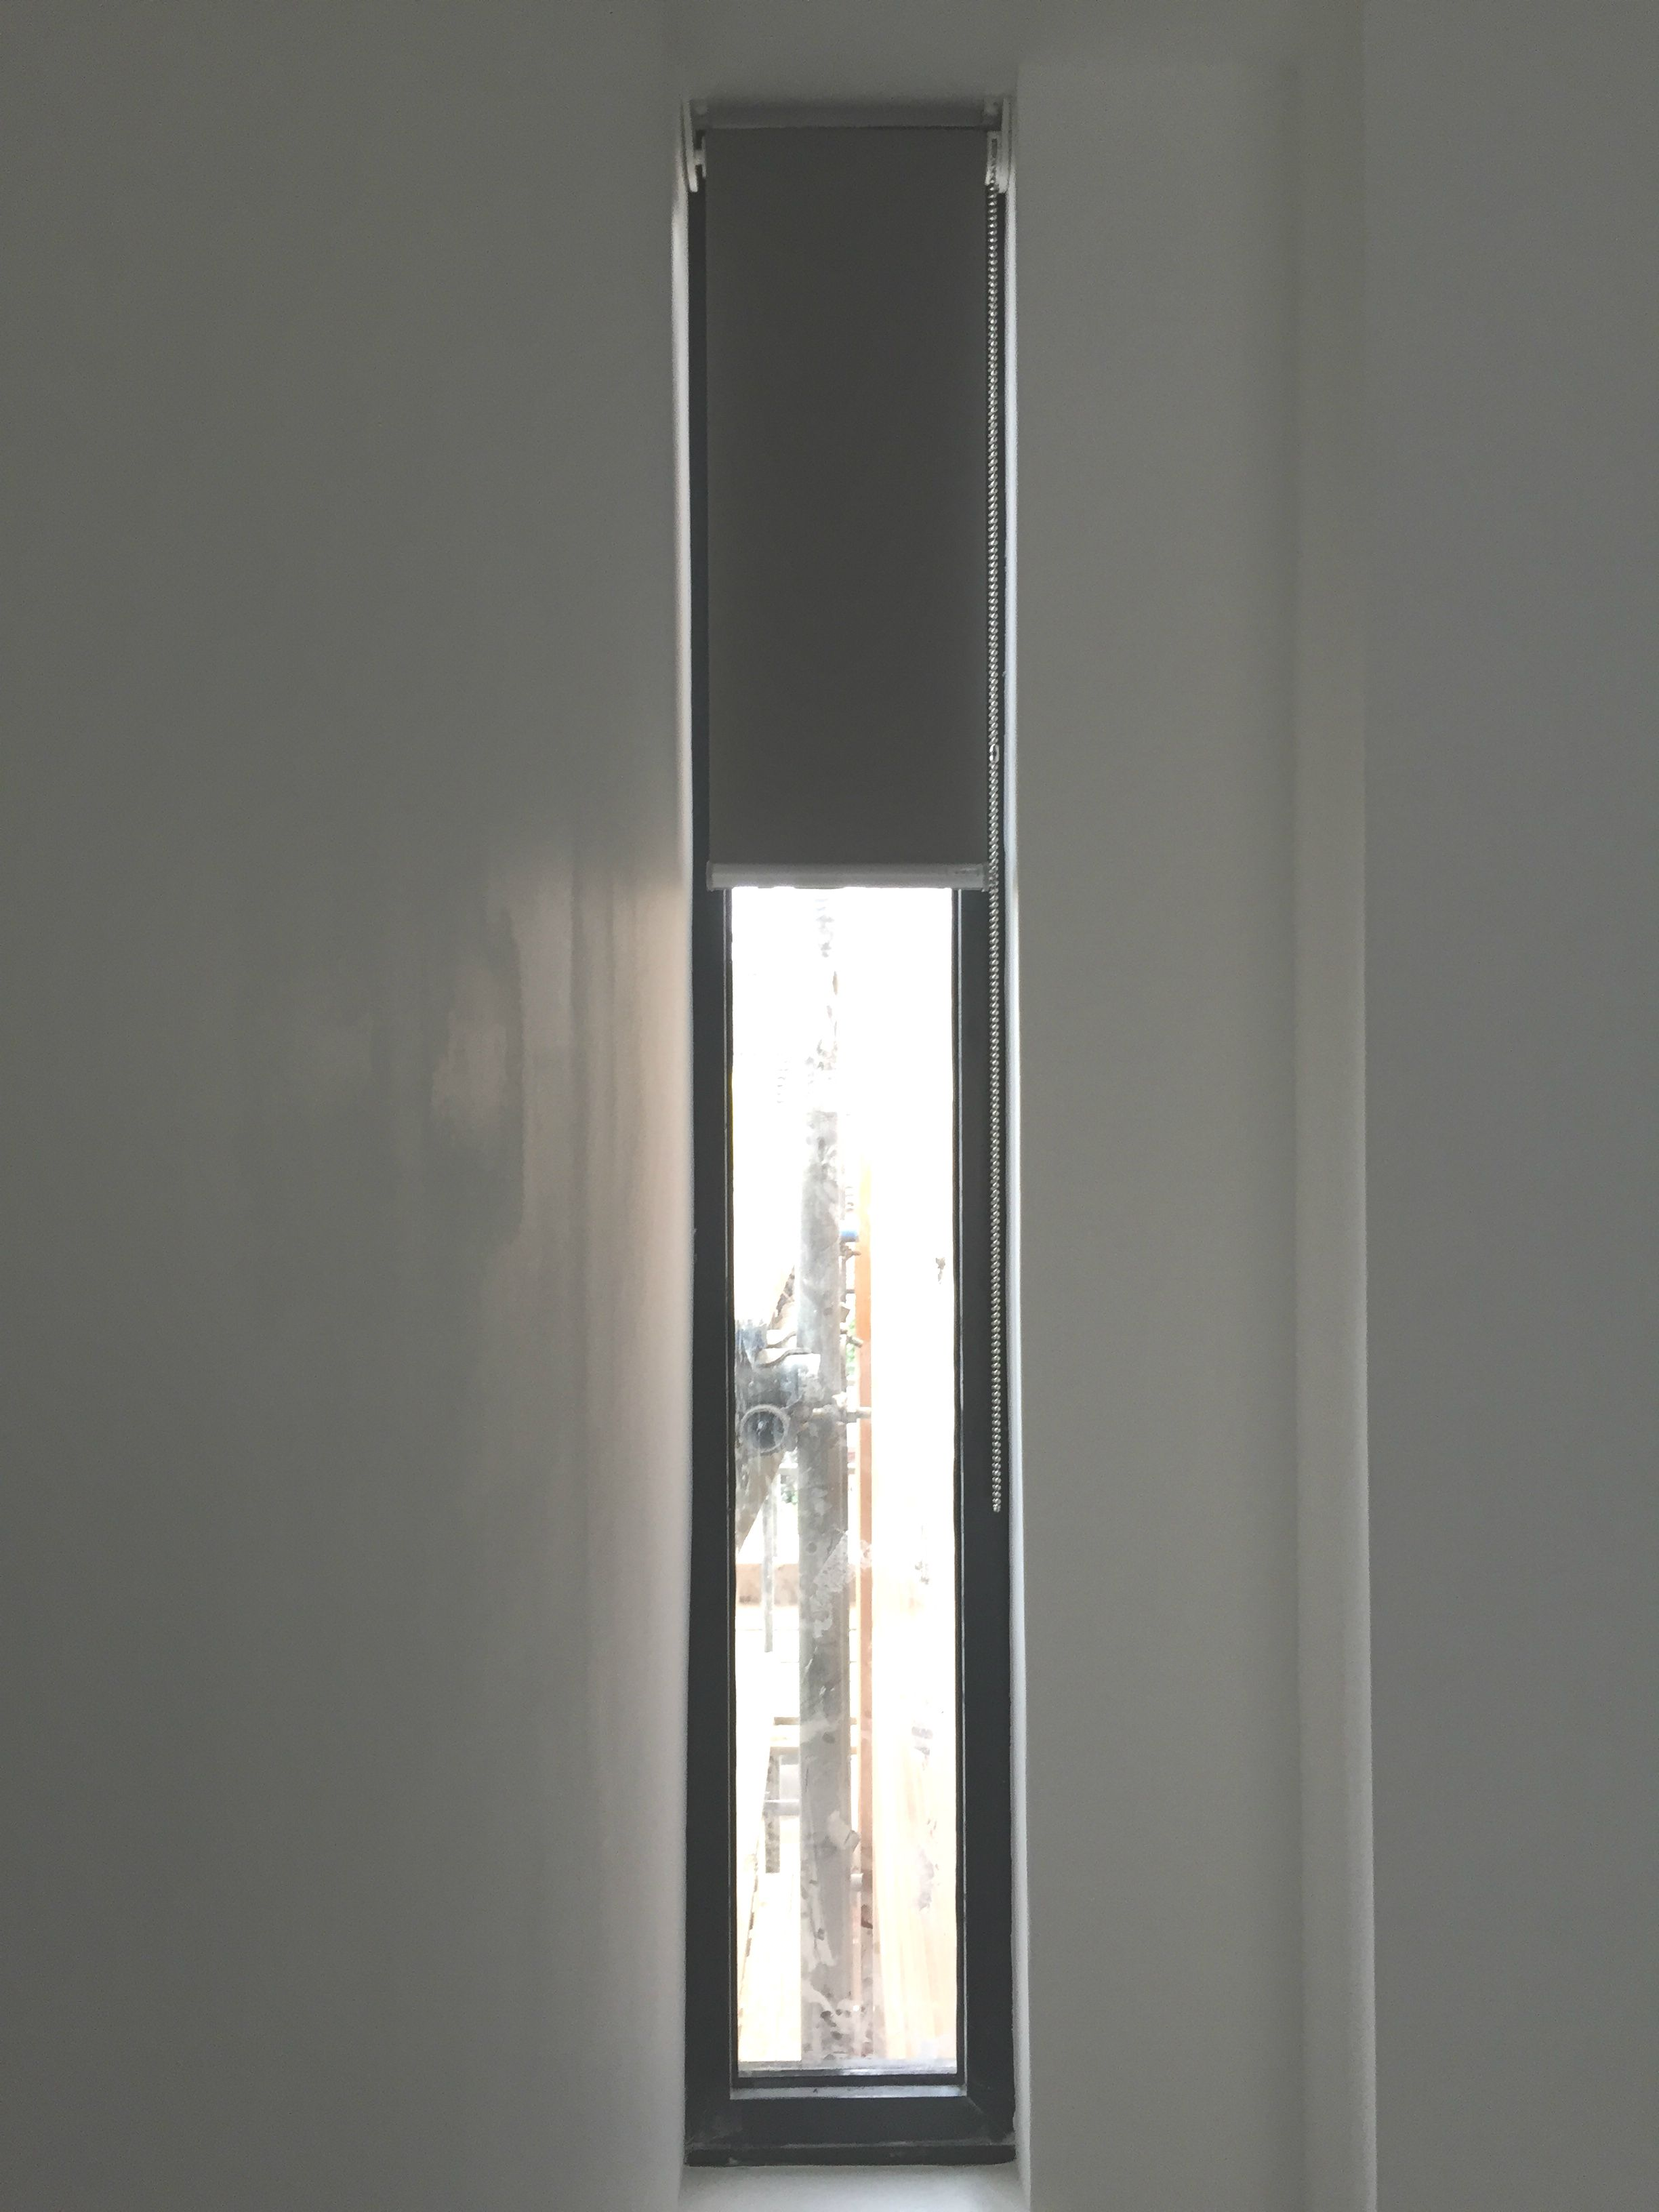 pin modern side roller to curtains finsbury park apartment ecole london tracks l made with in blind blackout building installed blinds